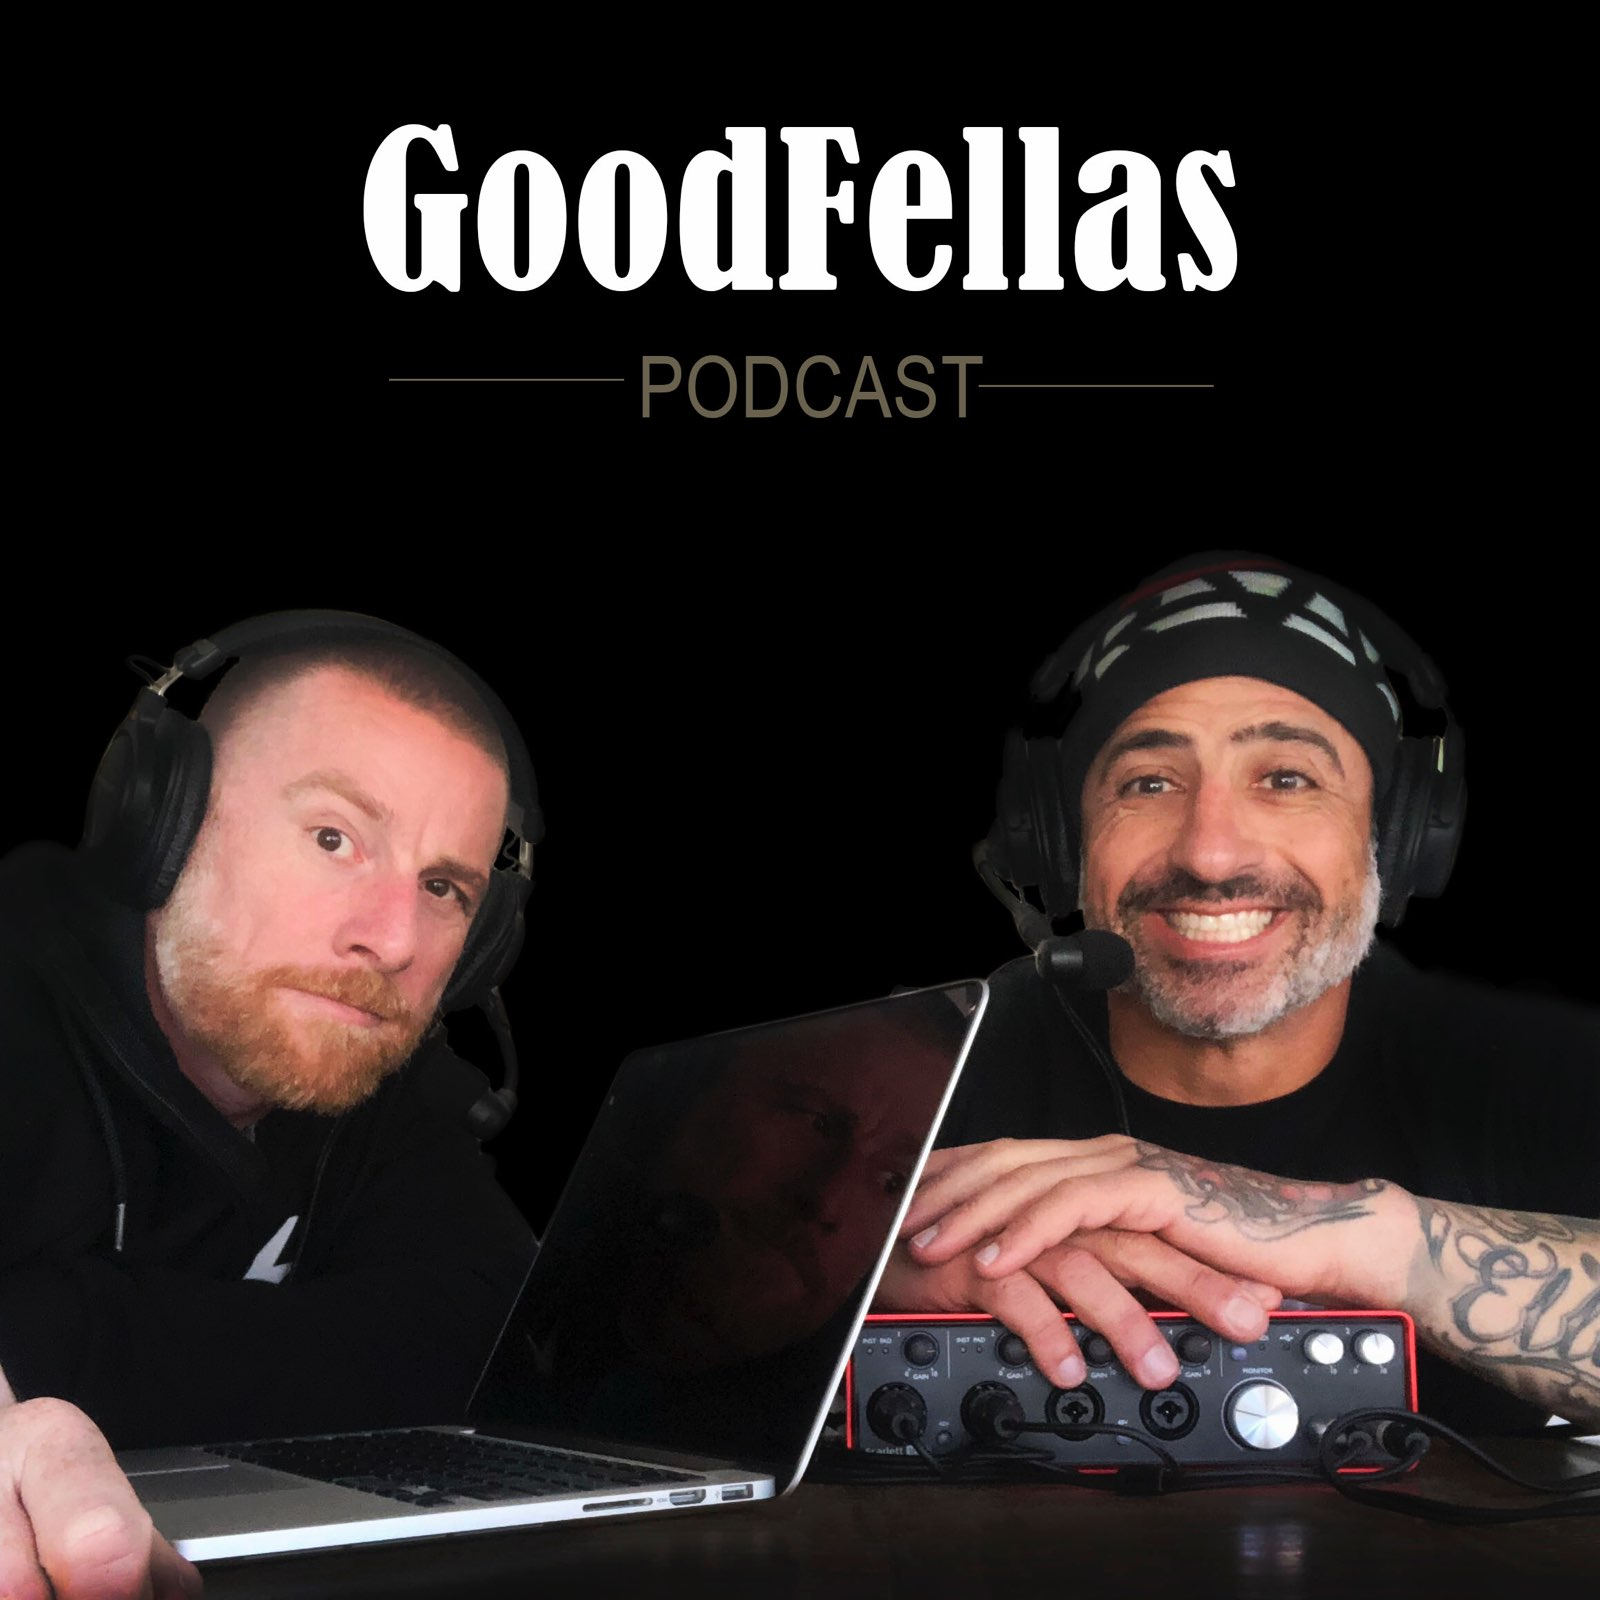 GoodFellas podcast